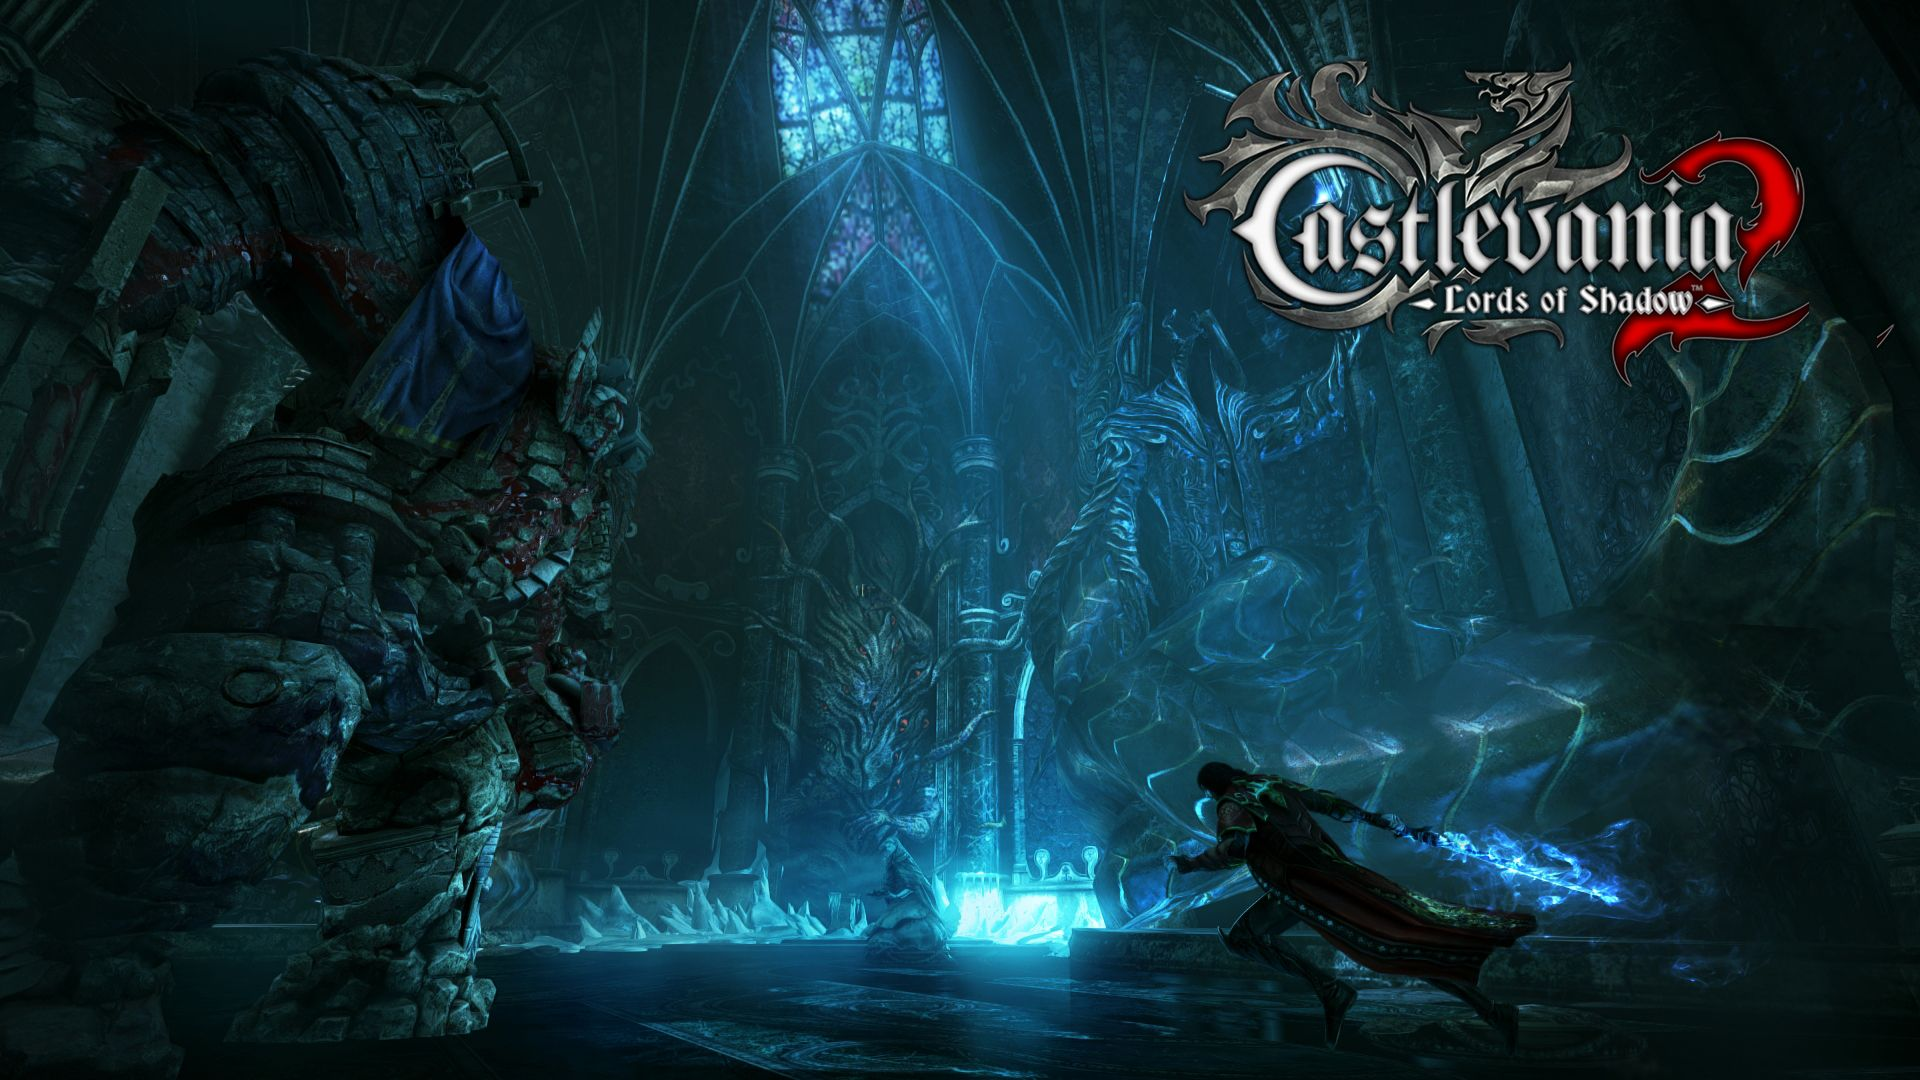 Full Hd 1080p Castlevania Lords Of Shadow 2 Wallpapers Hd